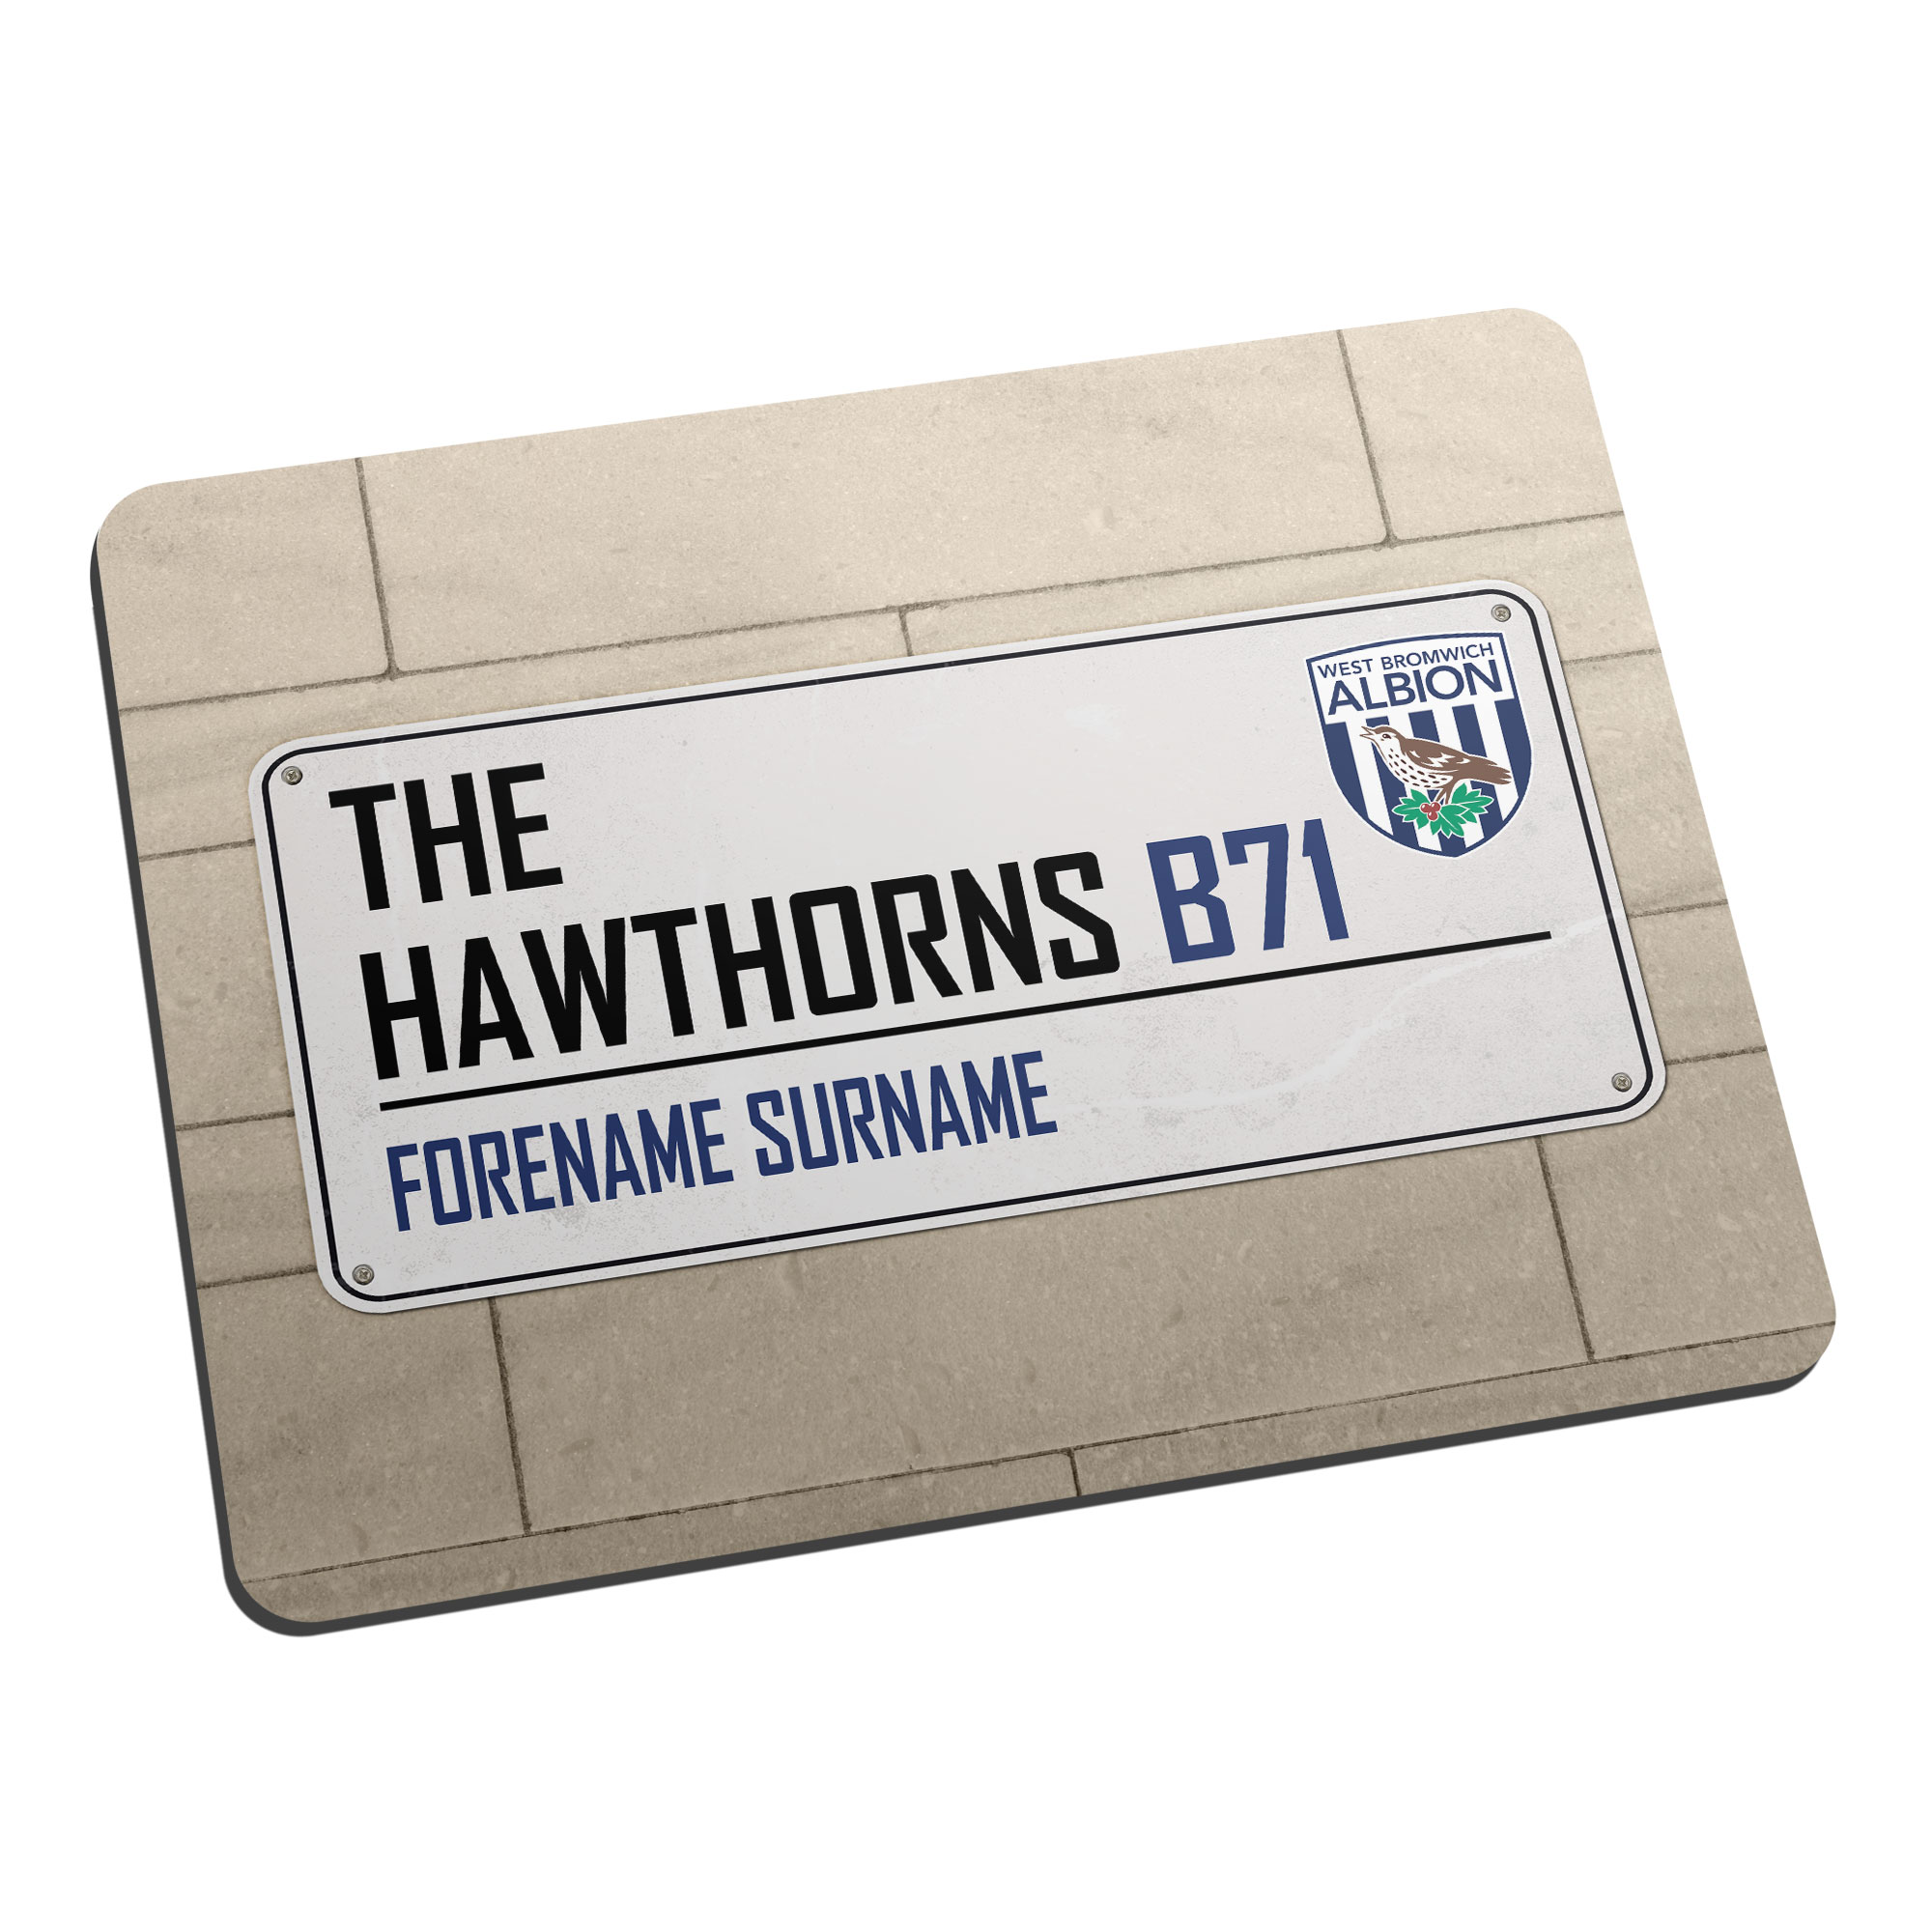 West Bromwich Albion FC Street Sign Mouse Mat